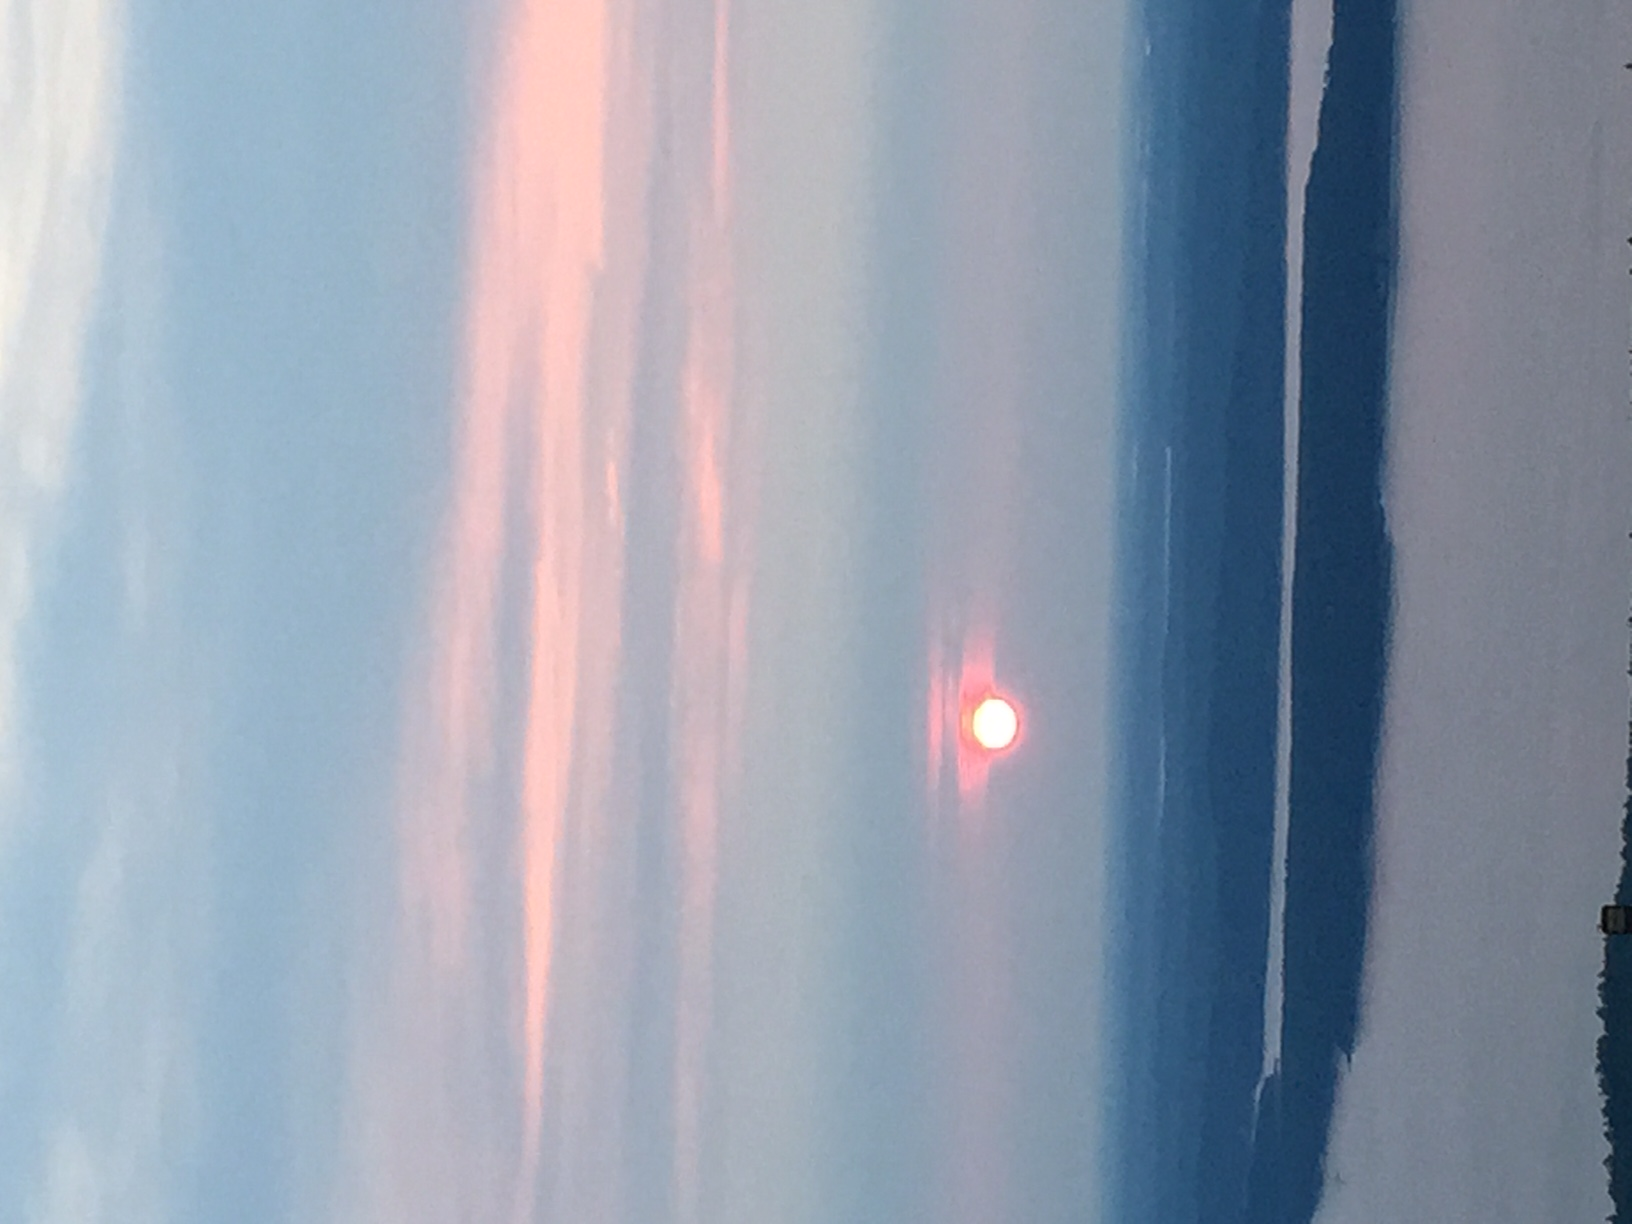 Sunrise on Cadillac mountain- first place to see the sunrise in the US.